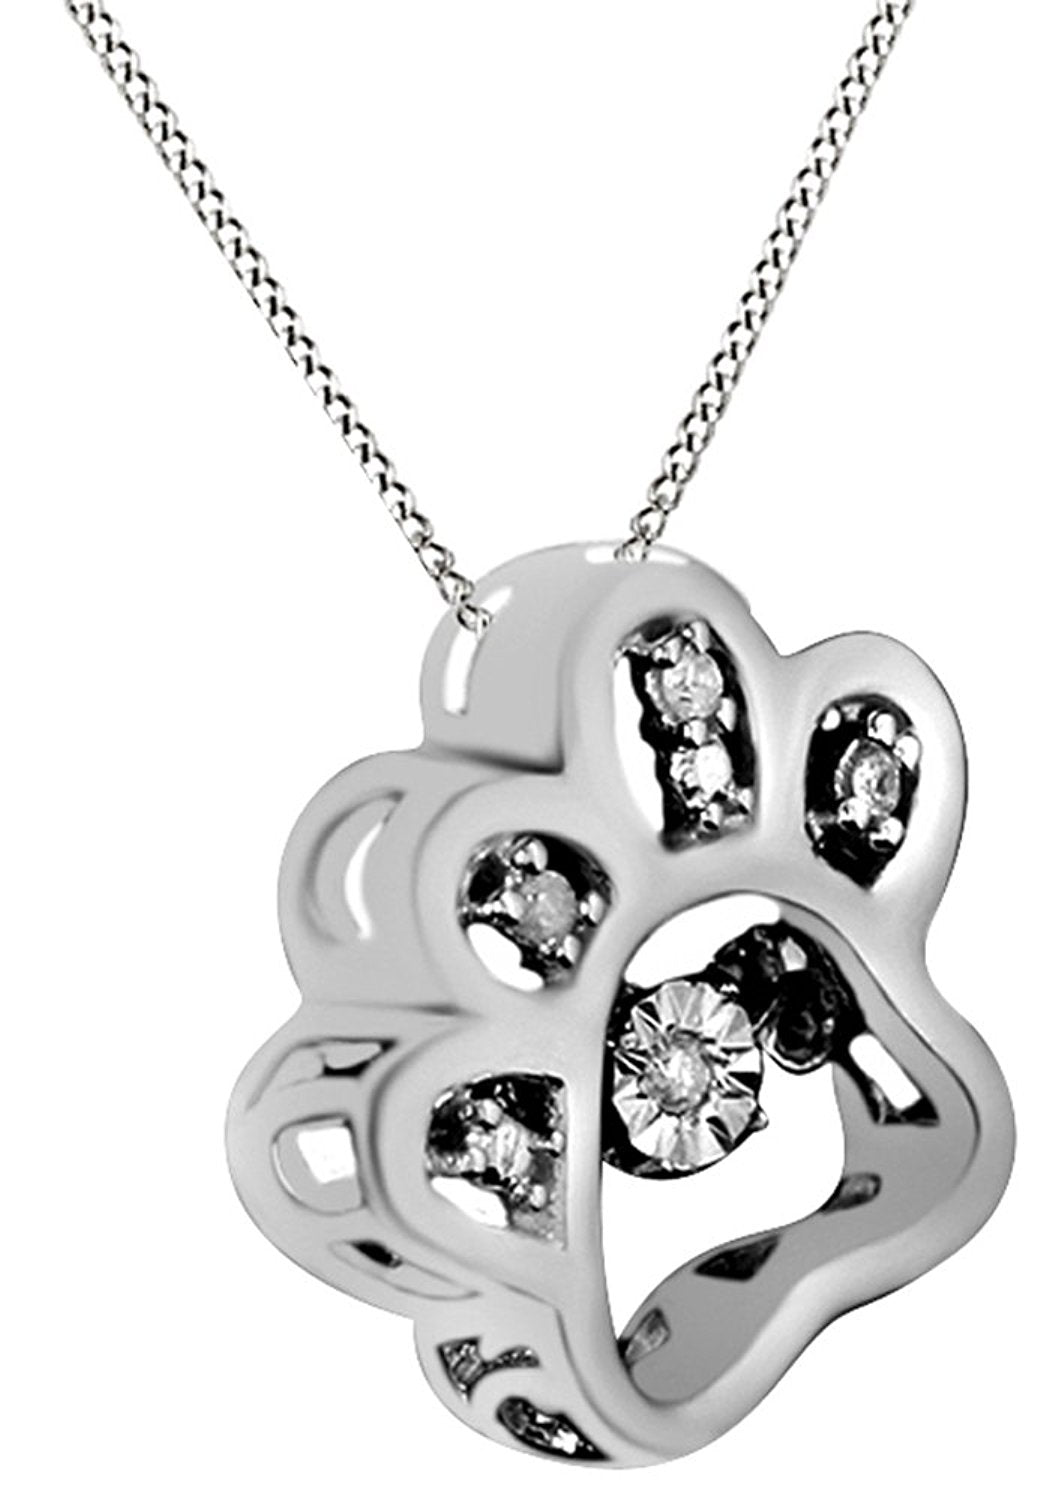 Natural diamond gold dog paw pendant dog necklace petley natural diamond gold dog paw pendant dog necklace mozeypictures Gallery